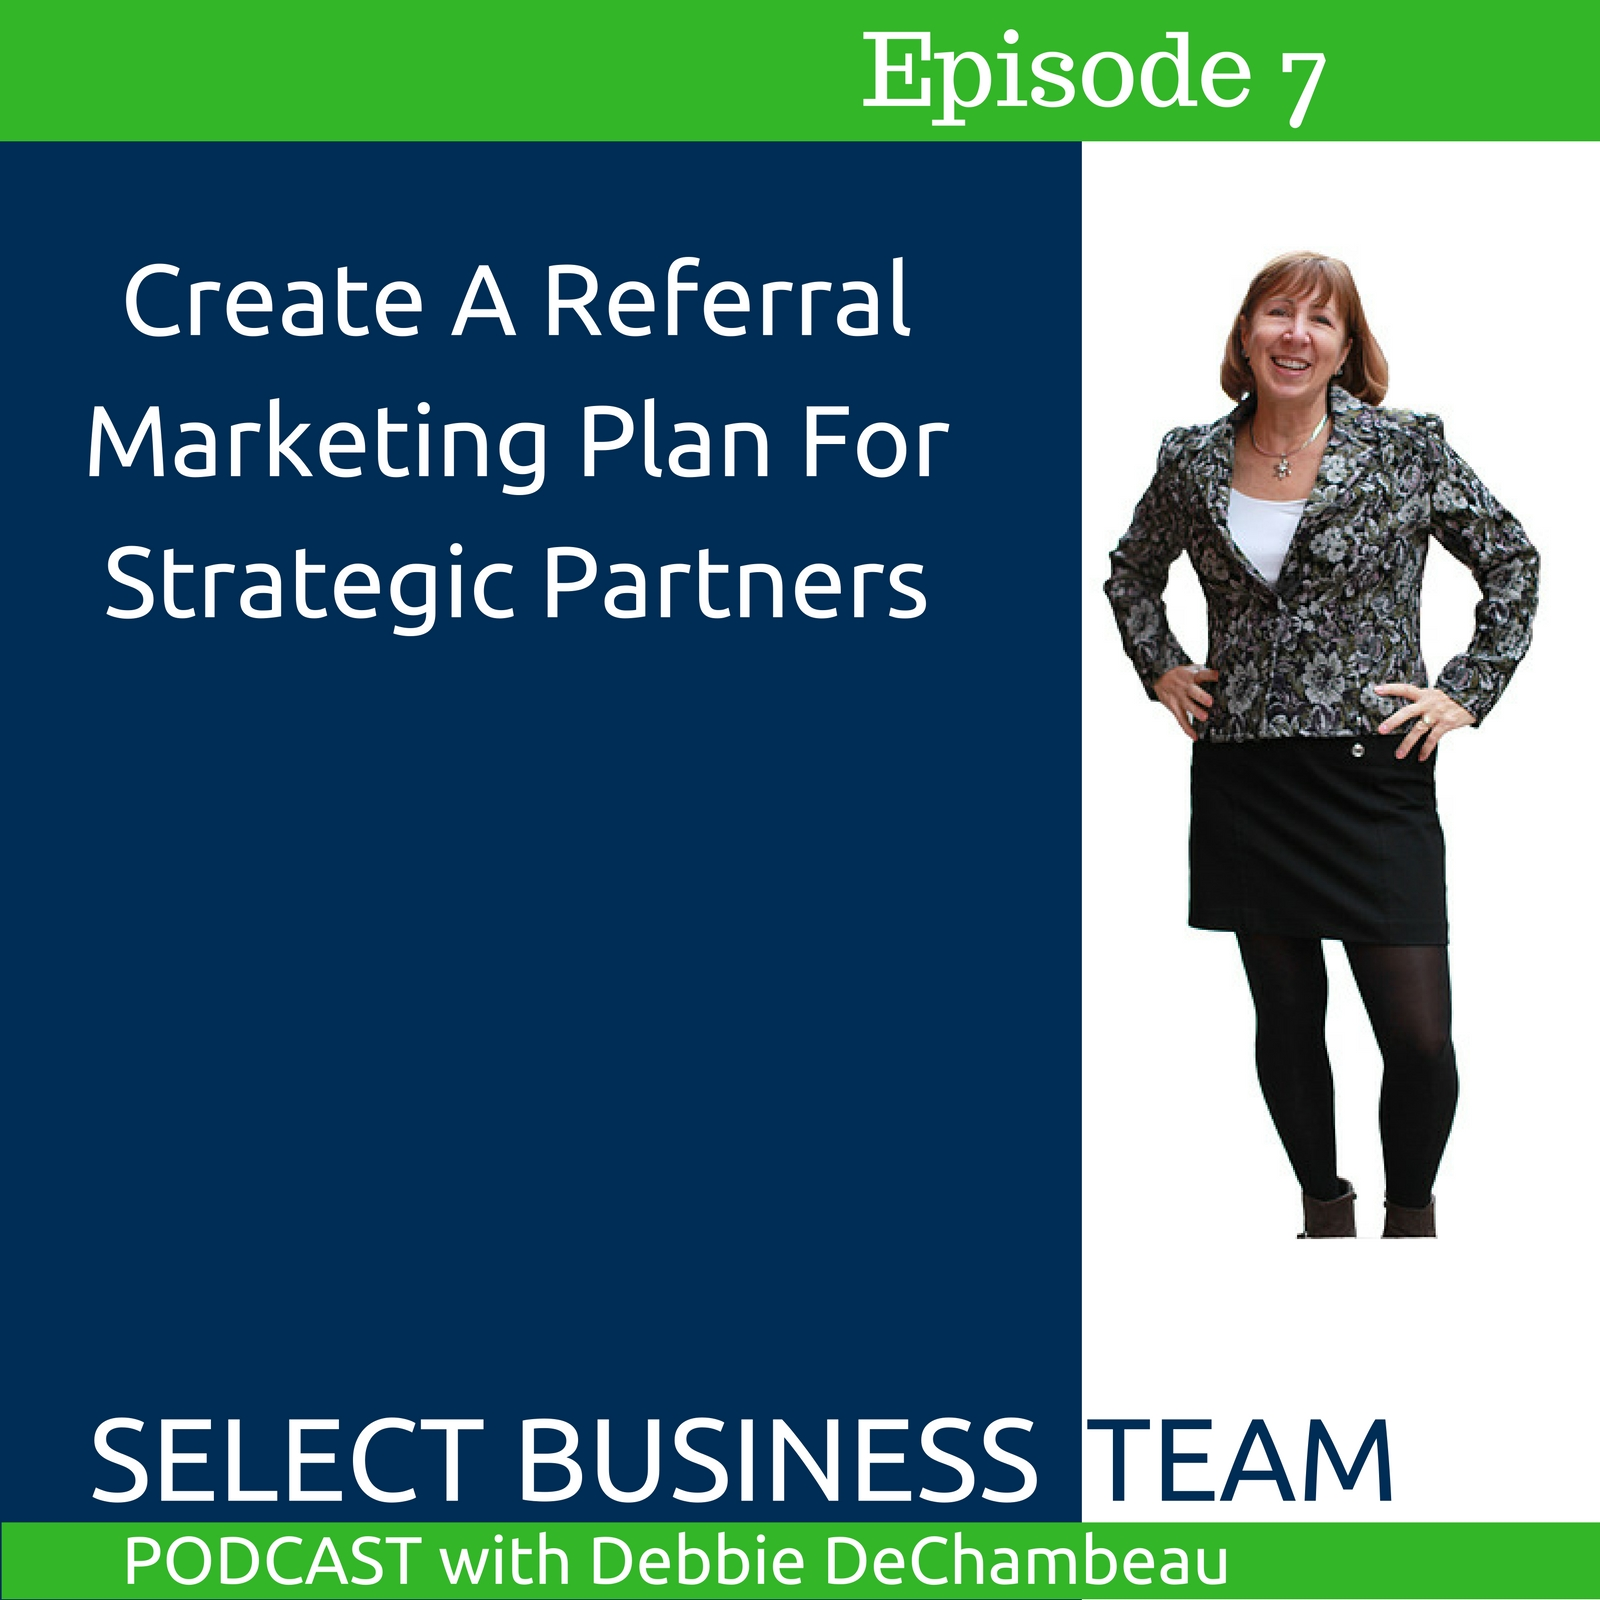 Creating A Referral Marketing Plan For Strategic Partners